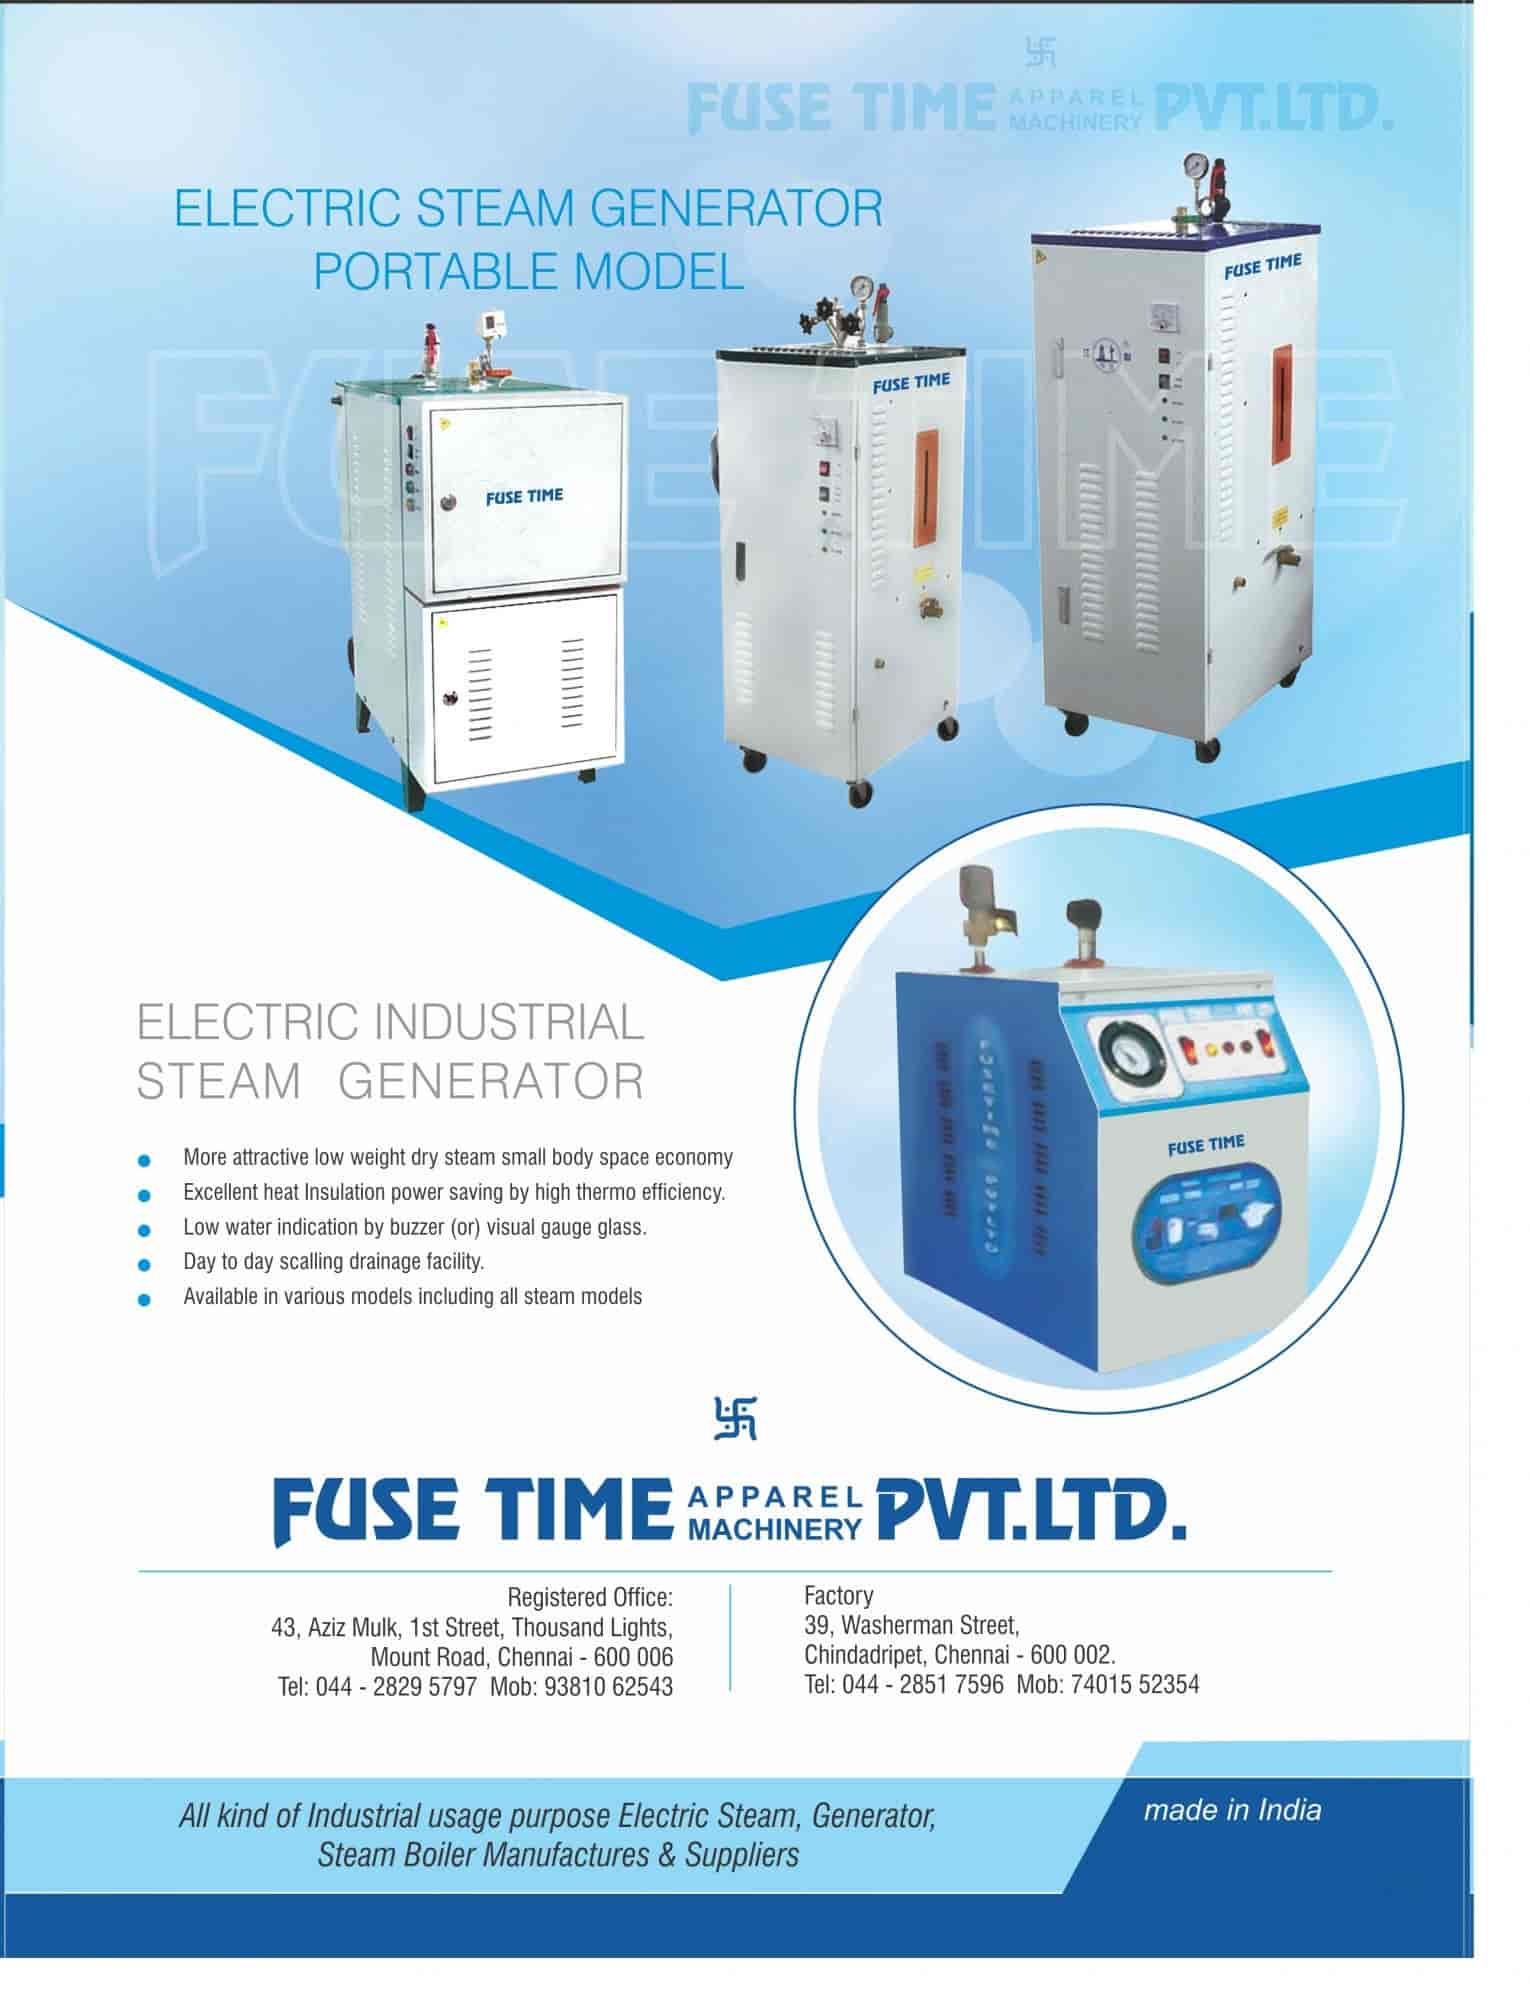 Fuse Time Apparel Machinery Pvt Ltd (Factory) Photos, Chindatripet ...